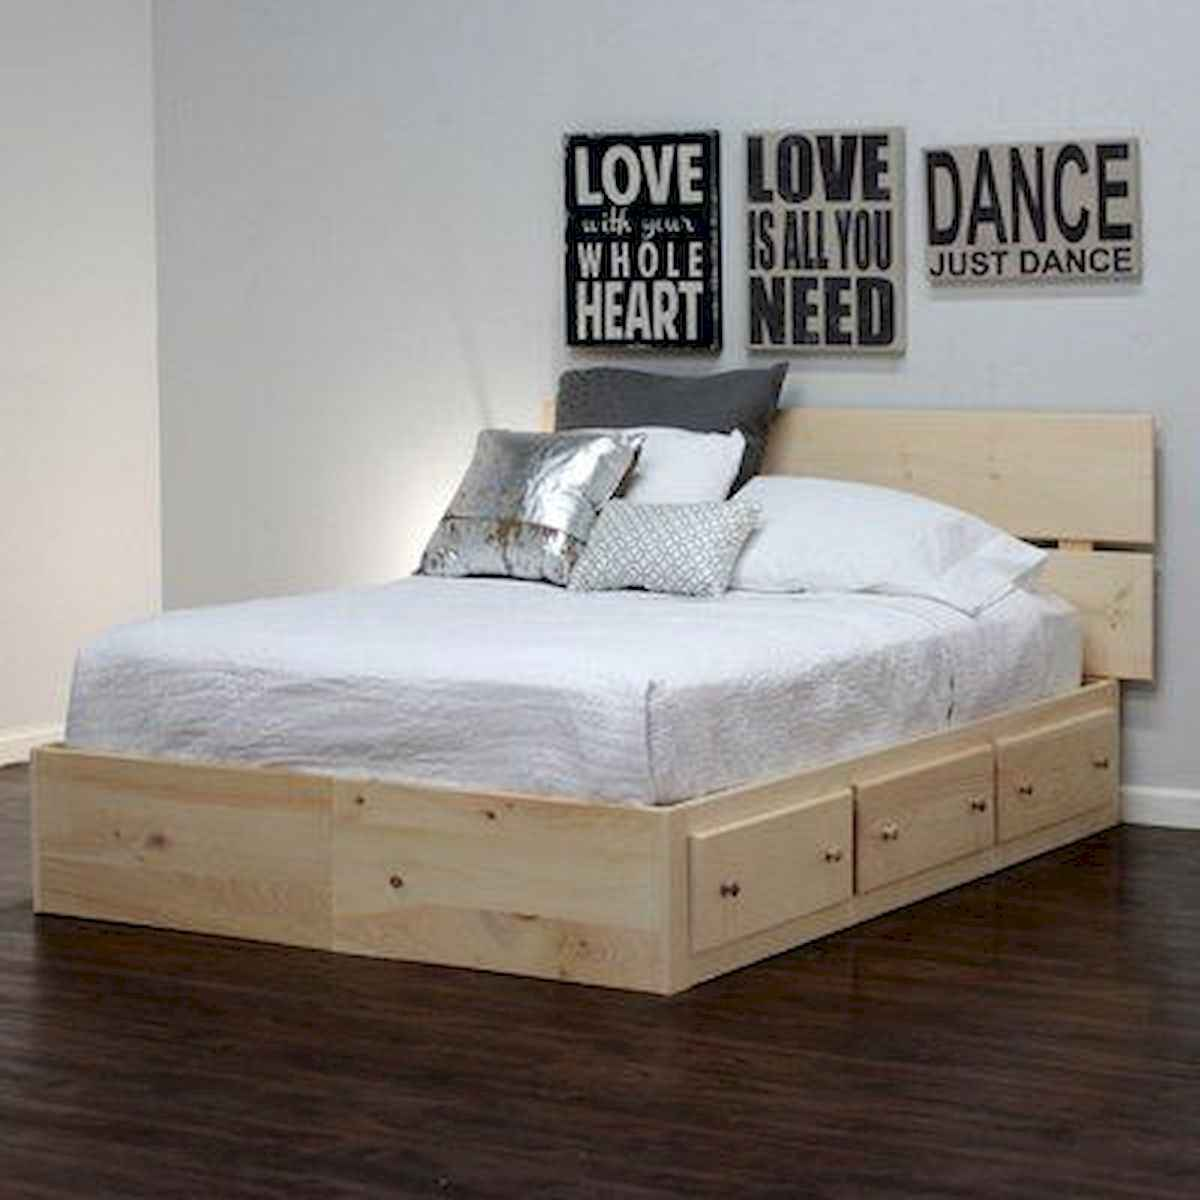 50 Creative Recycled DIY Projects Pallet Beds Design Ideas (4)